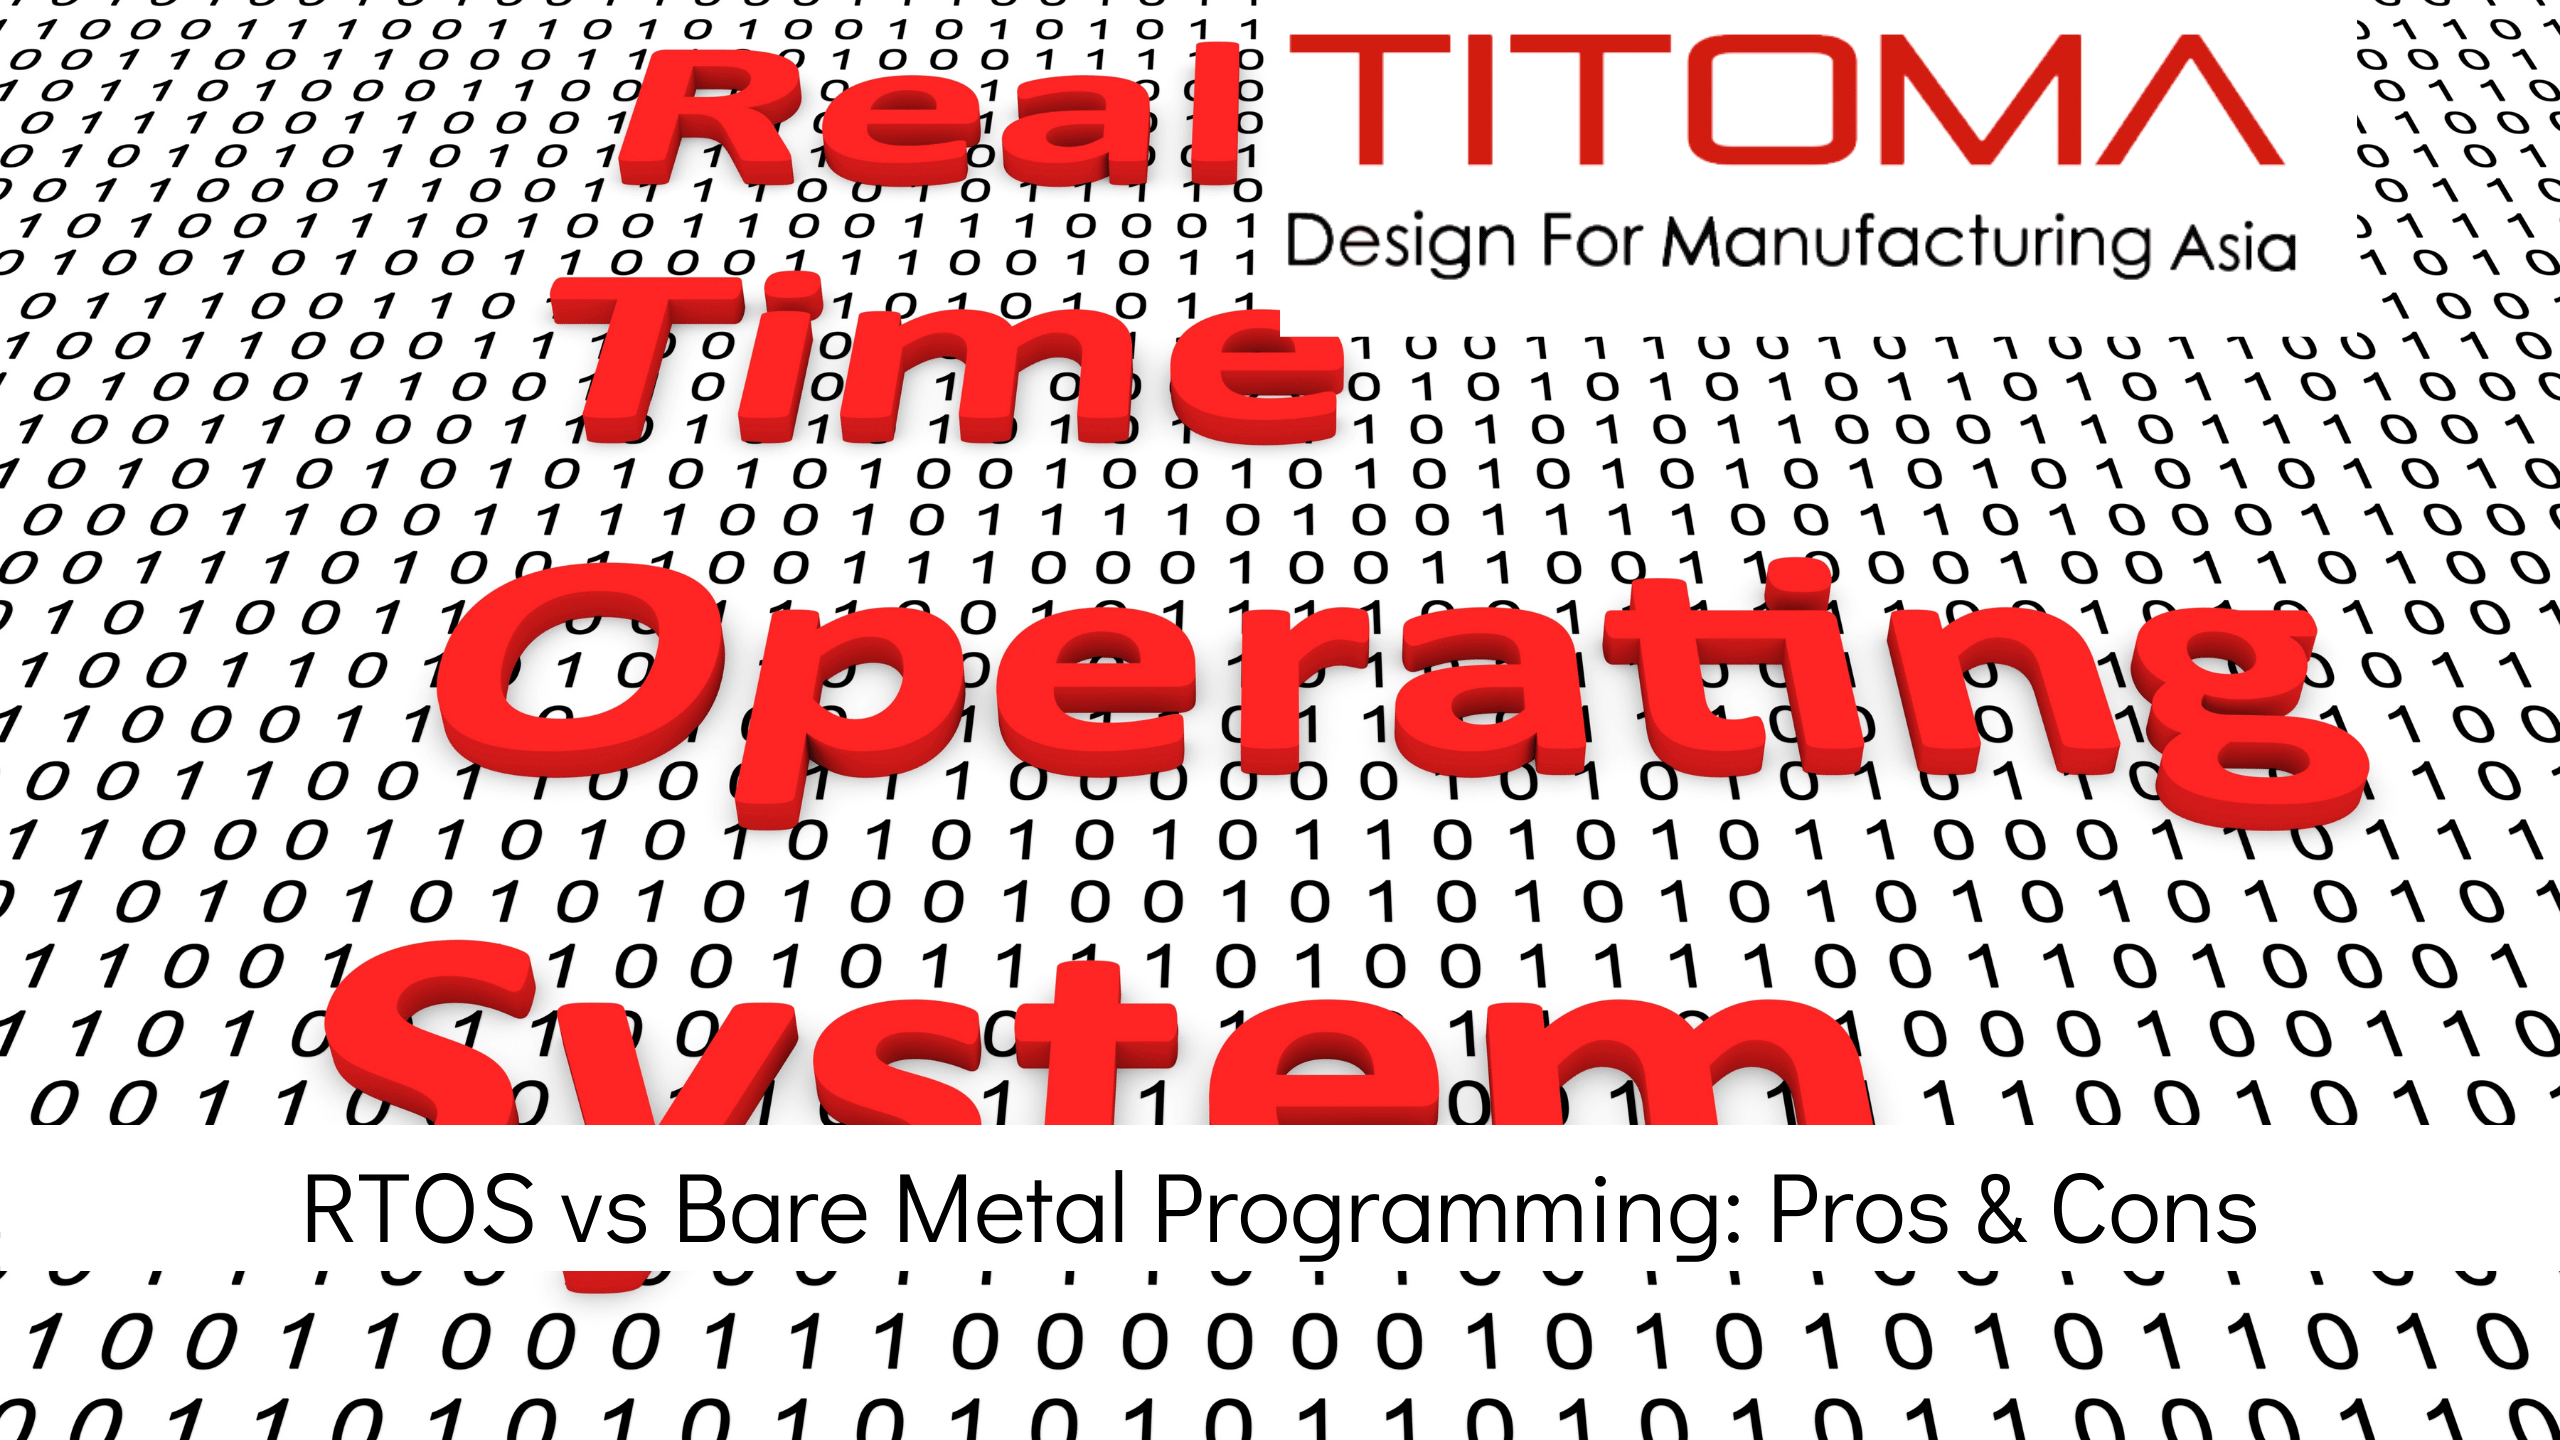 RTOS vs bare metal programming pros and cons